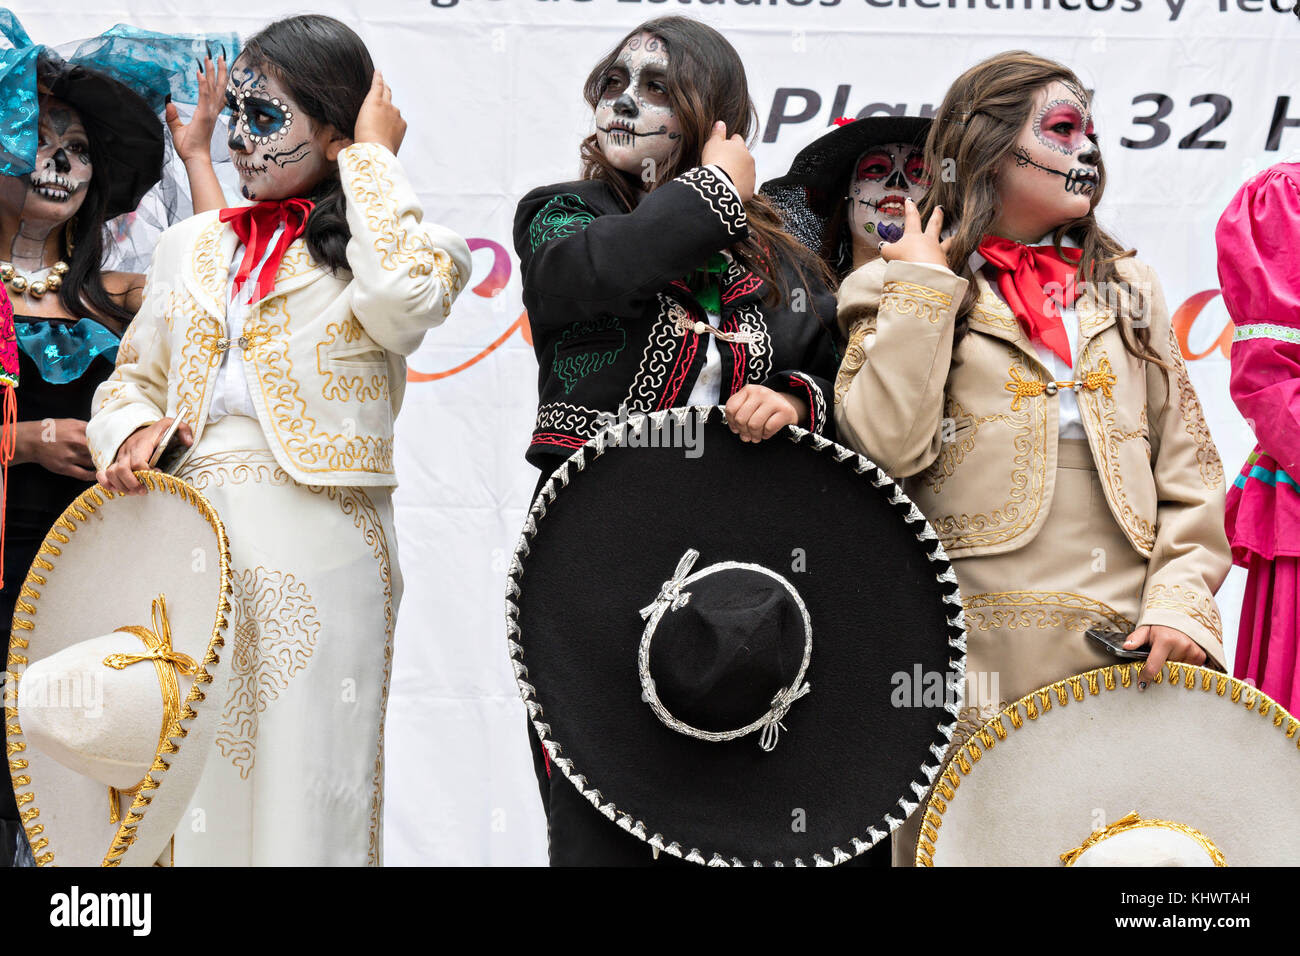 Young Women Dressed In La Calavera Catrina Costumes During The Day